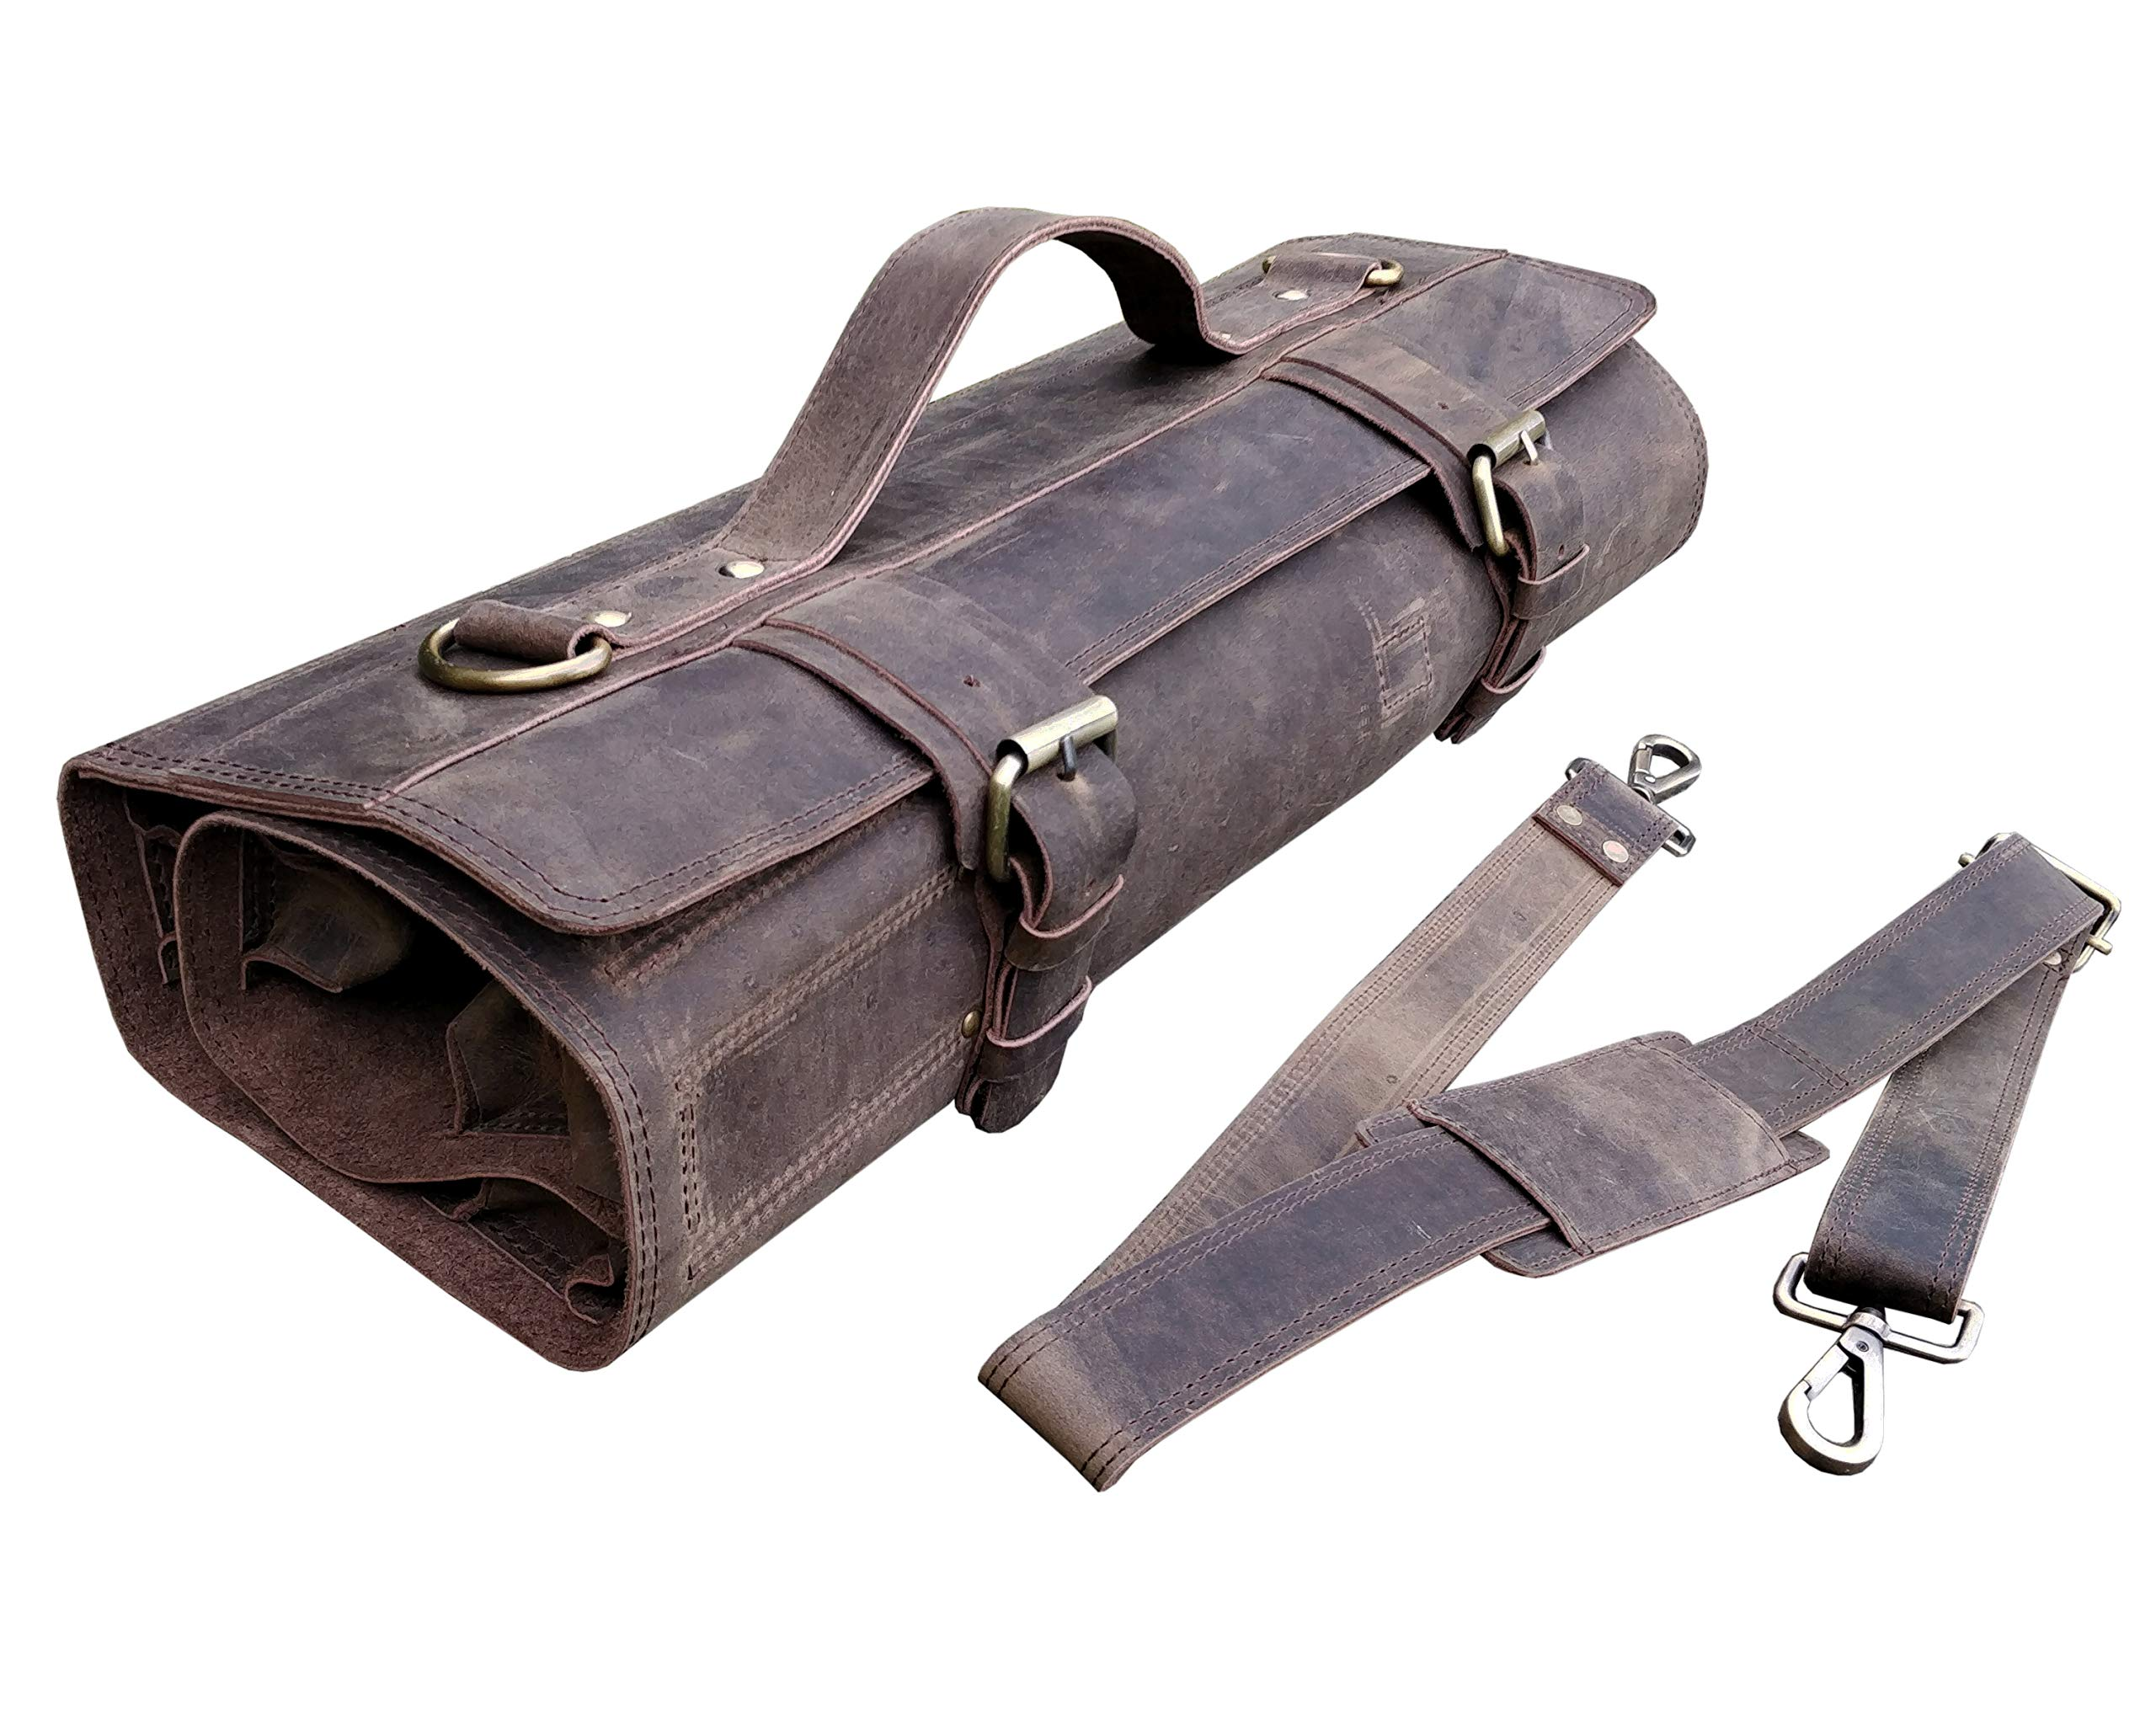 One Leaf - Leather Knife Roll Chefs Bag Hunter Leather - Bedouin X (Brass Color Buckle)